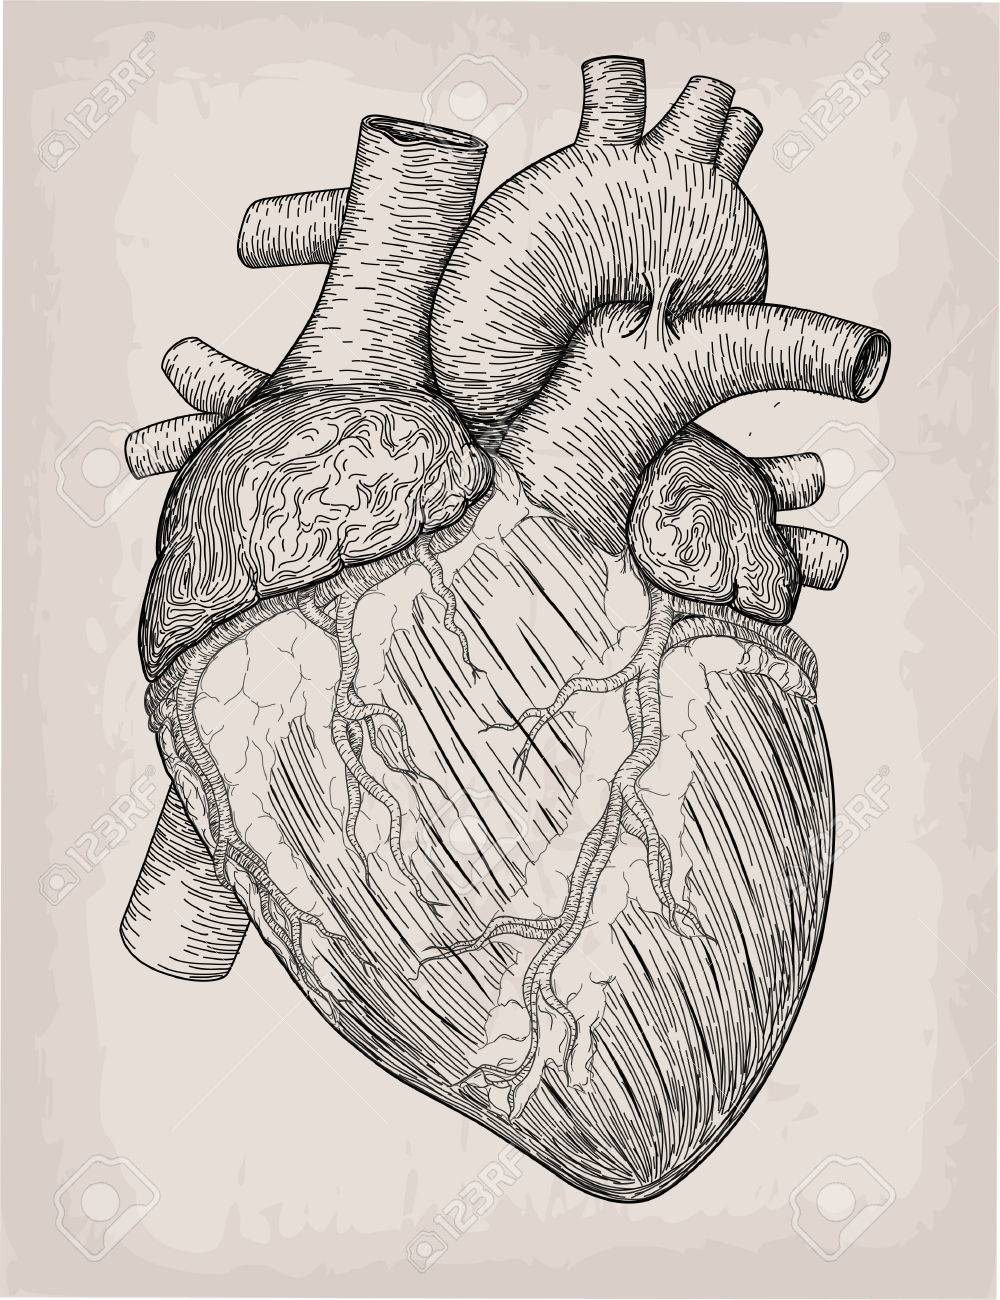 Detailed Heart Drawing : detailed, heart, drawing, Human, Heart, Drawn., Anatomical, Sketch., Medicine,, Vector, Illustration.., Royalty, Cliparts,, Vectors,, Stock, Illustration., Image, 83274958.